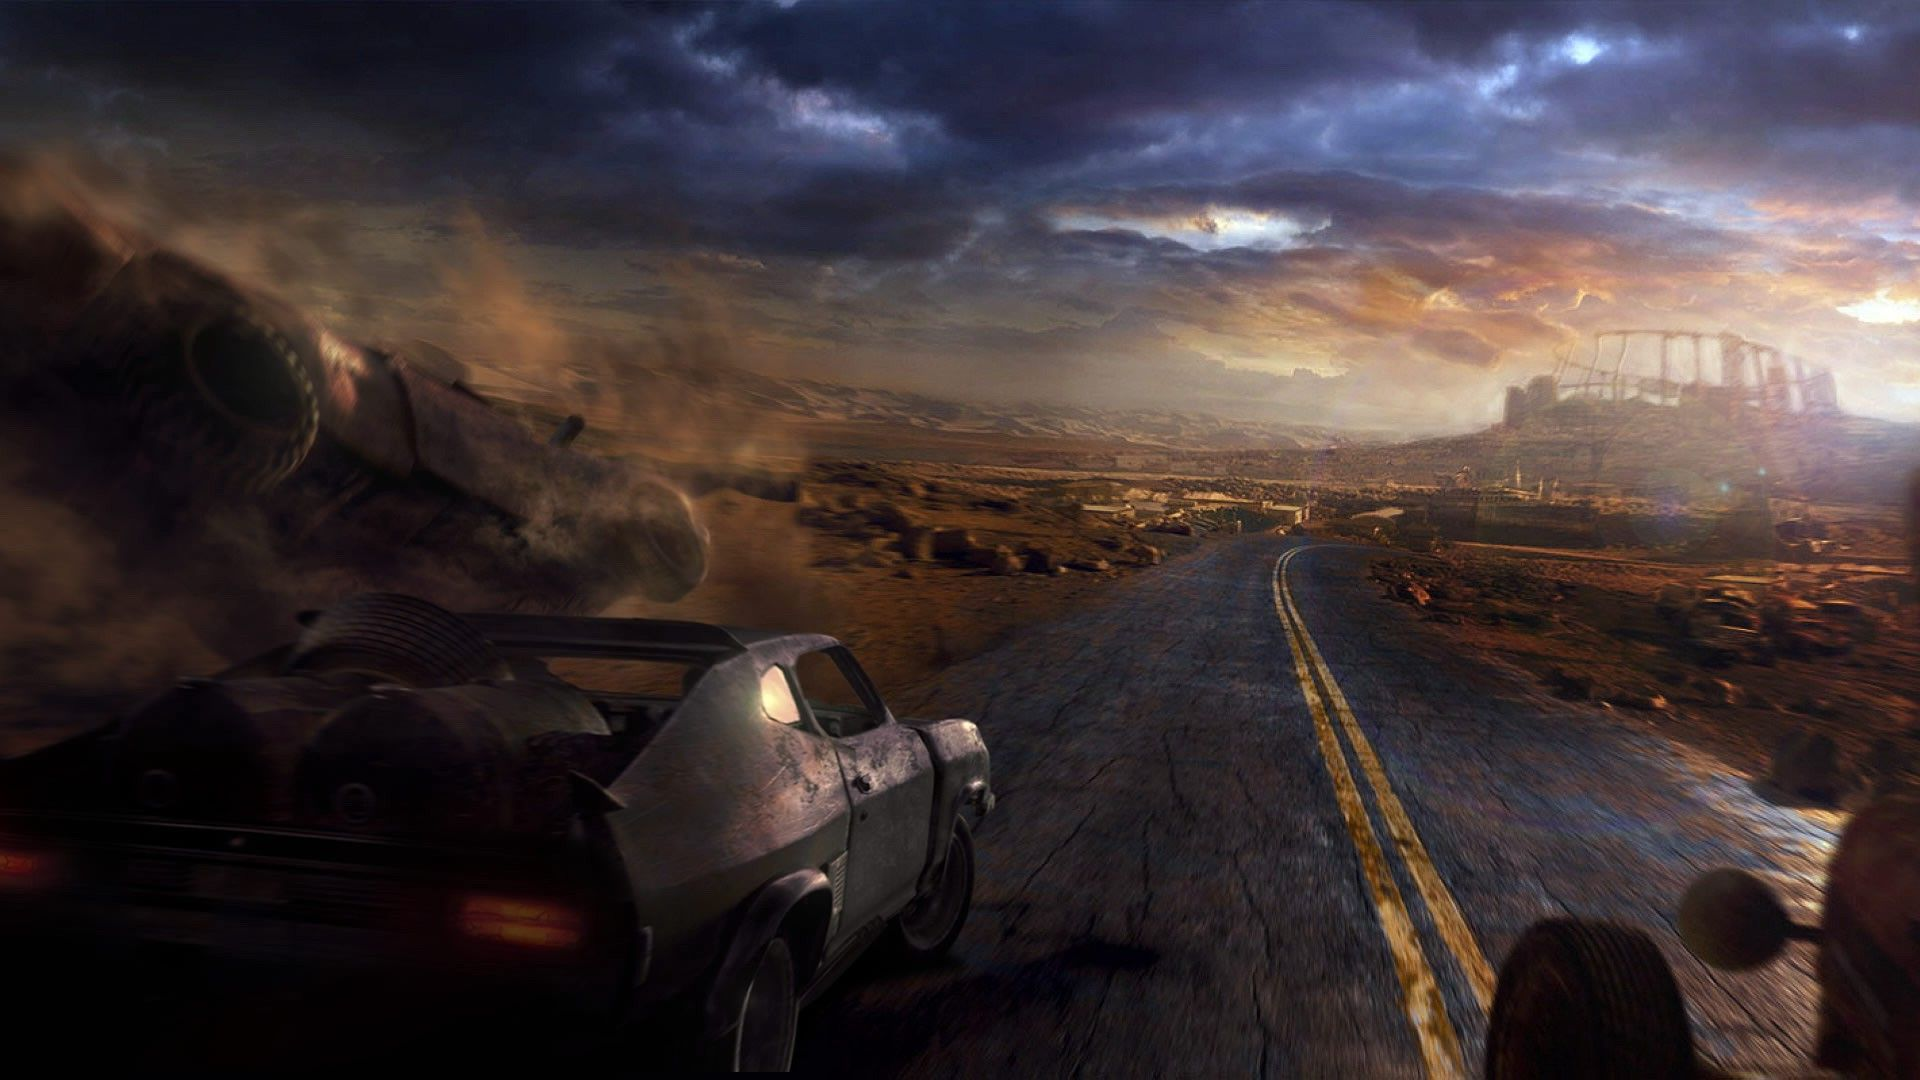 10 Latest Wallpaper Hd Games 2015 Full Hd 1080p For Pc: Mad Max Wallpapers HD